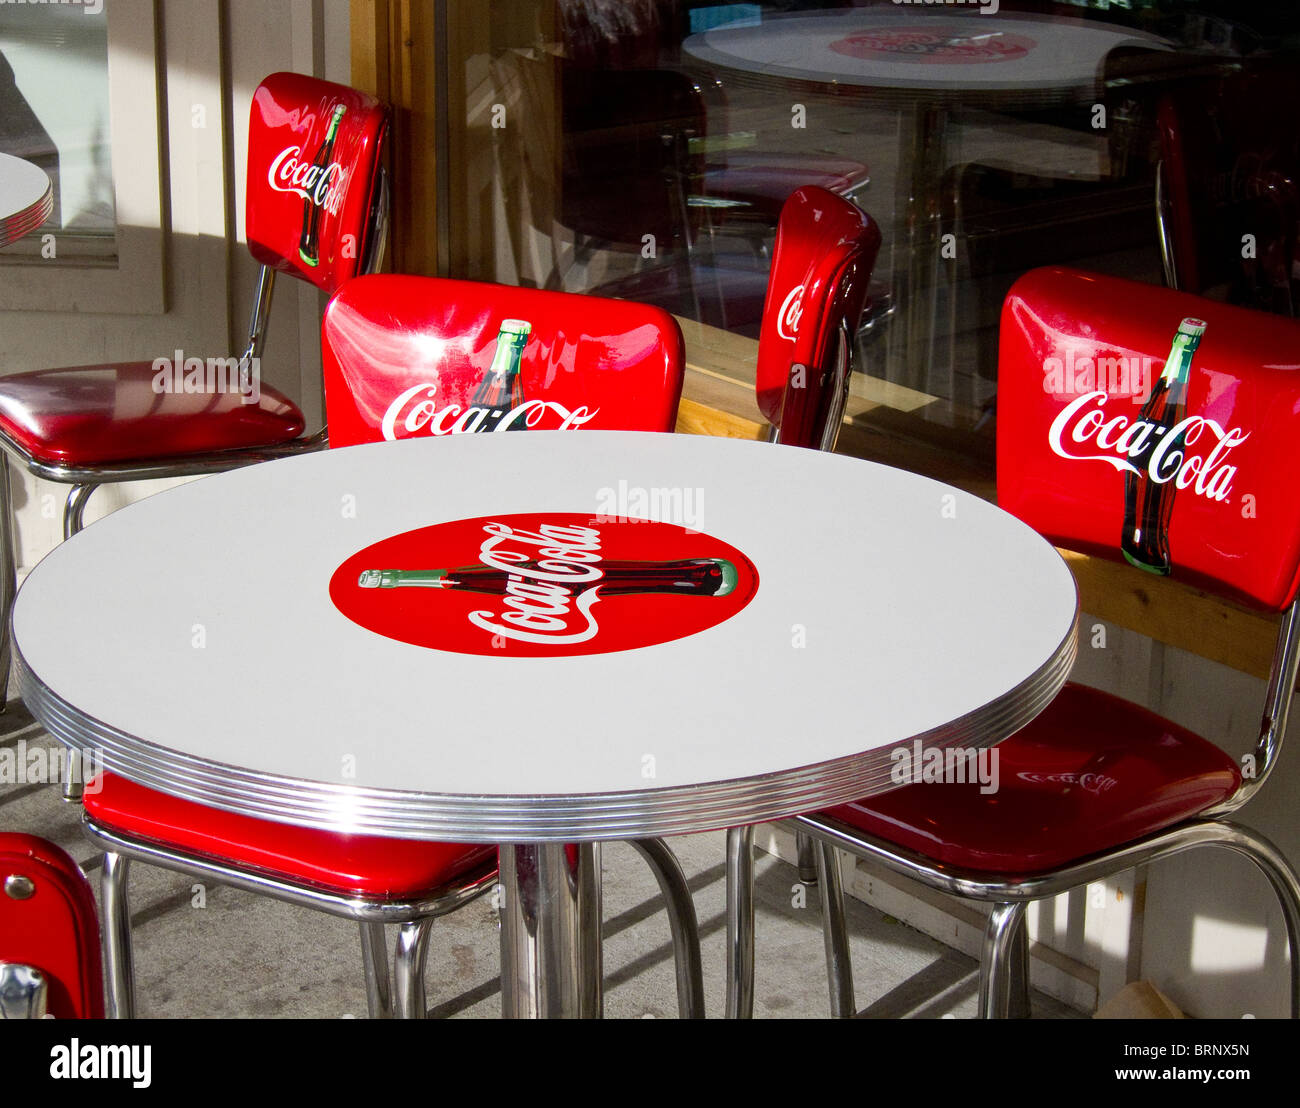 Red coca cola chairs around a white coca cola table stock photo 31828993 alamy - Coca cola table and chairs set ...